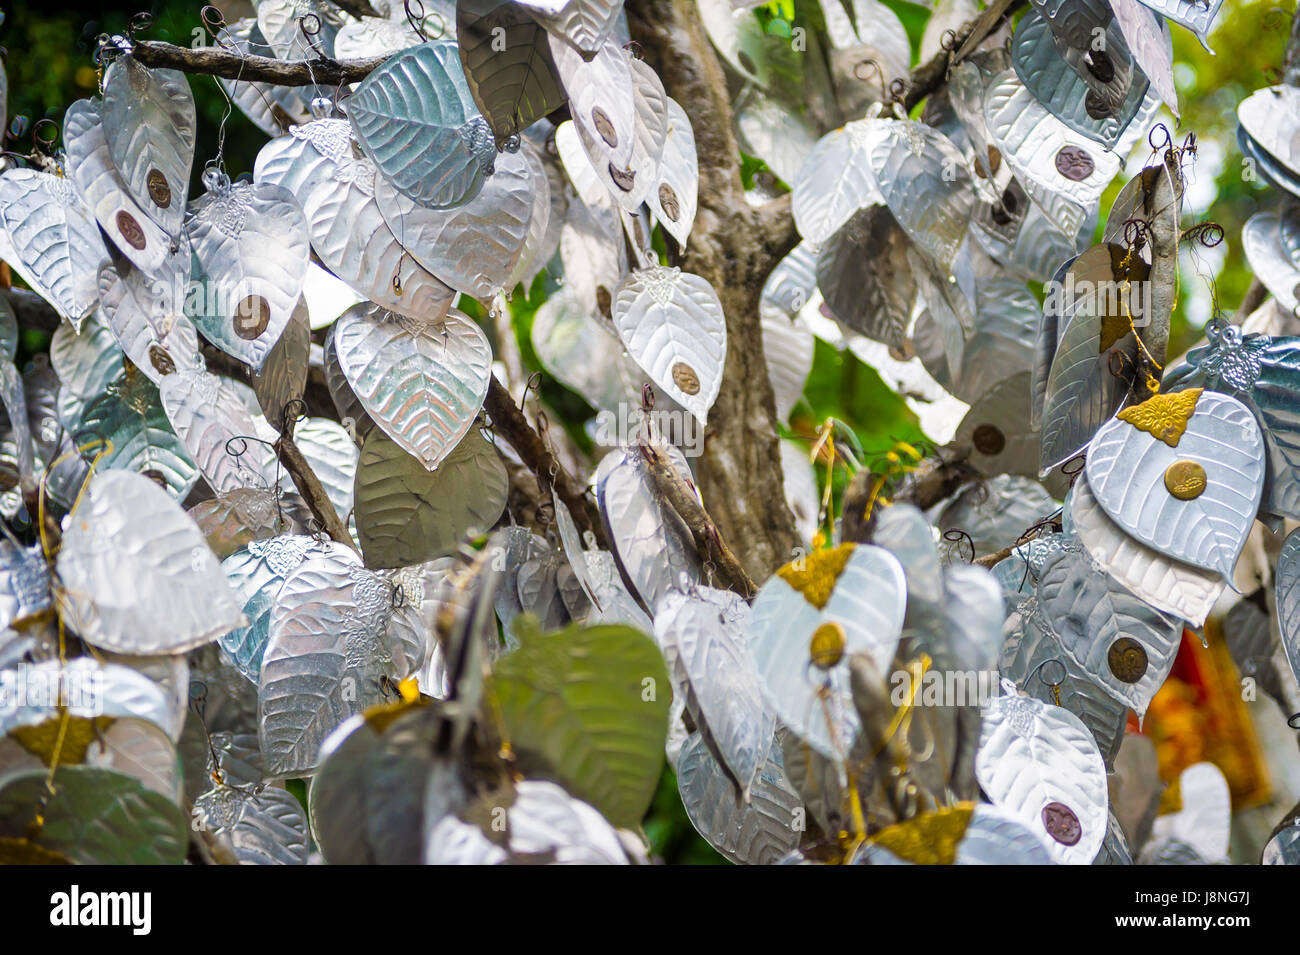 Silver bodhi leaves hanging from a sacred wishing tree in a Buddhist temple in Bangkok, Thailand - Stock Image